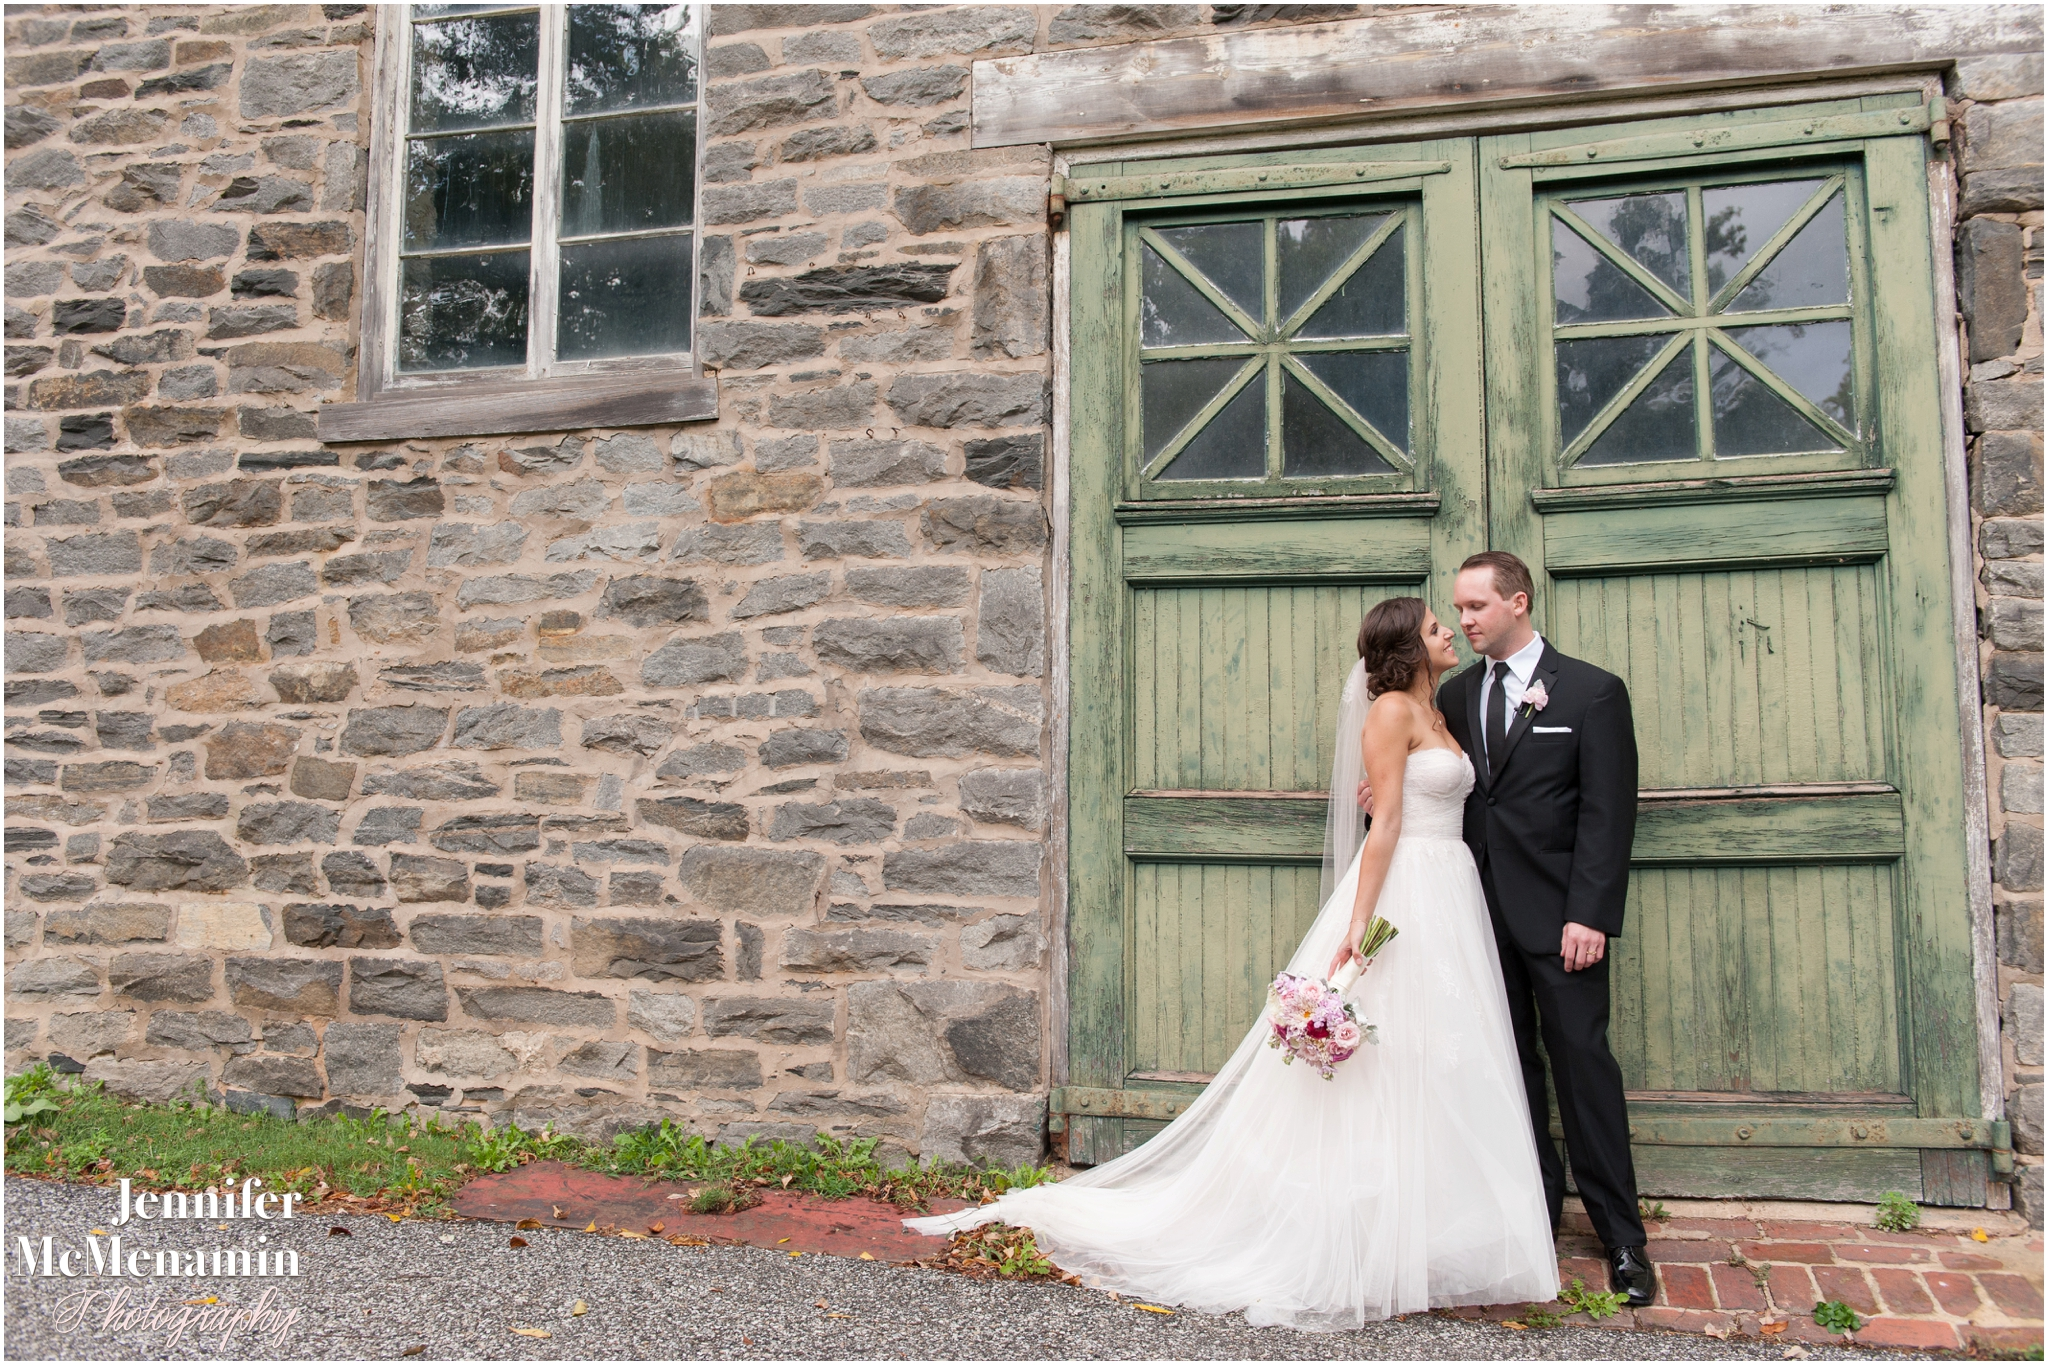 0090-BlumWilliams_03315-0655_JenniferMcMenaminPhotography_Evergreen-Museum-Carriage-House_Baltimore-wedding-photography_Baltimore-wedding-photographer